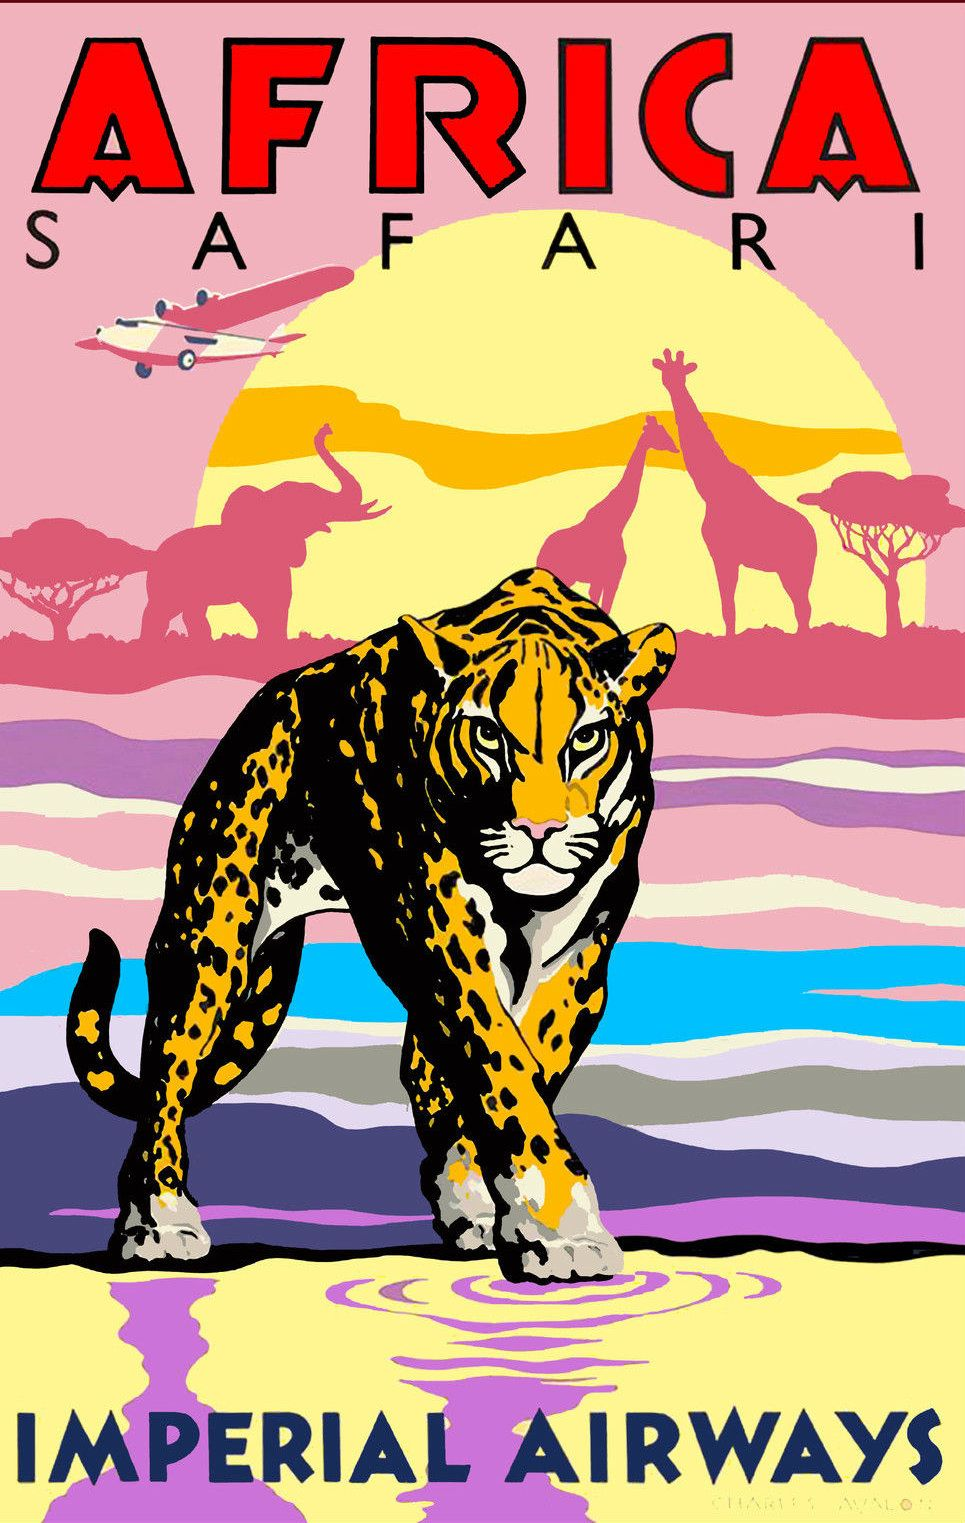 KENYA VINTAGE STYLE REPRODUCTION TRAVEL POSTER Choice of sizes.